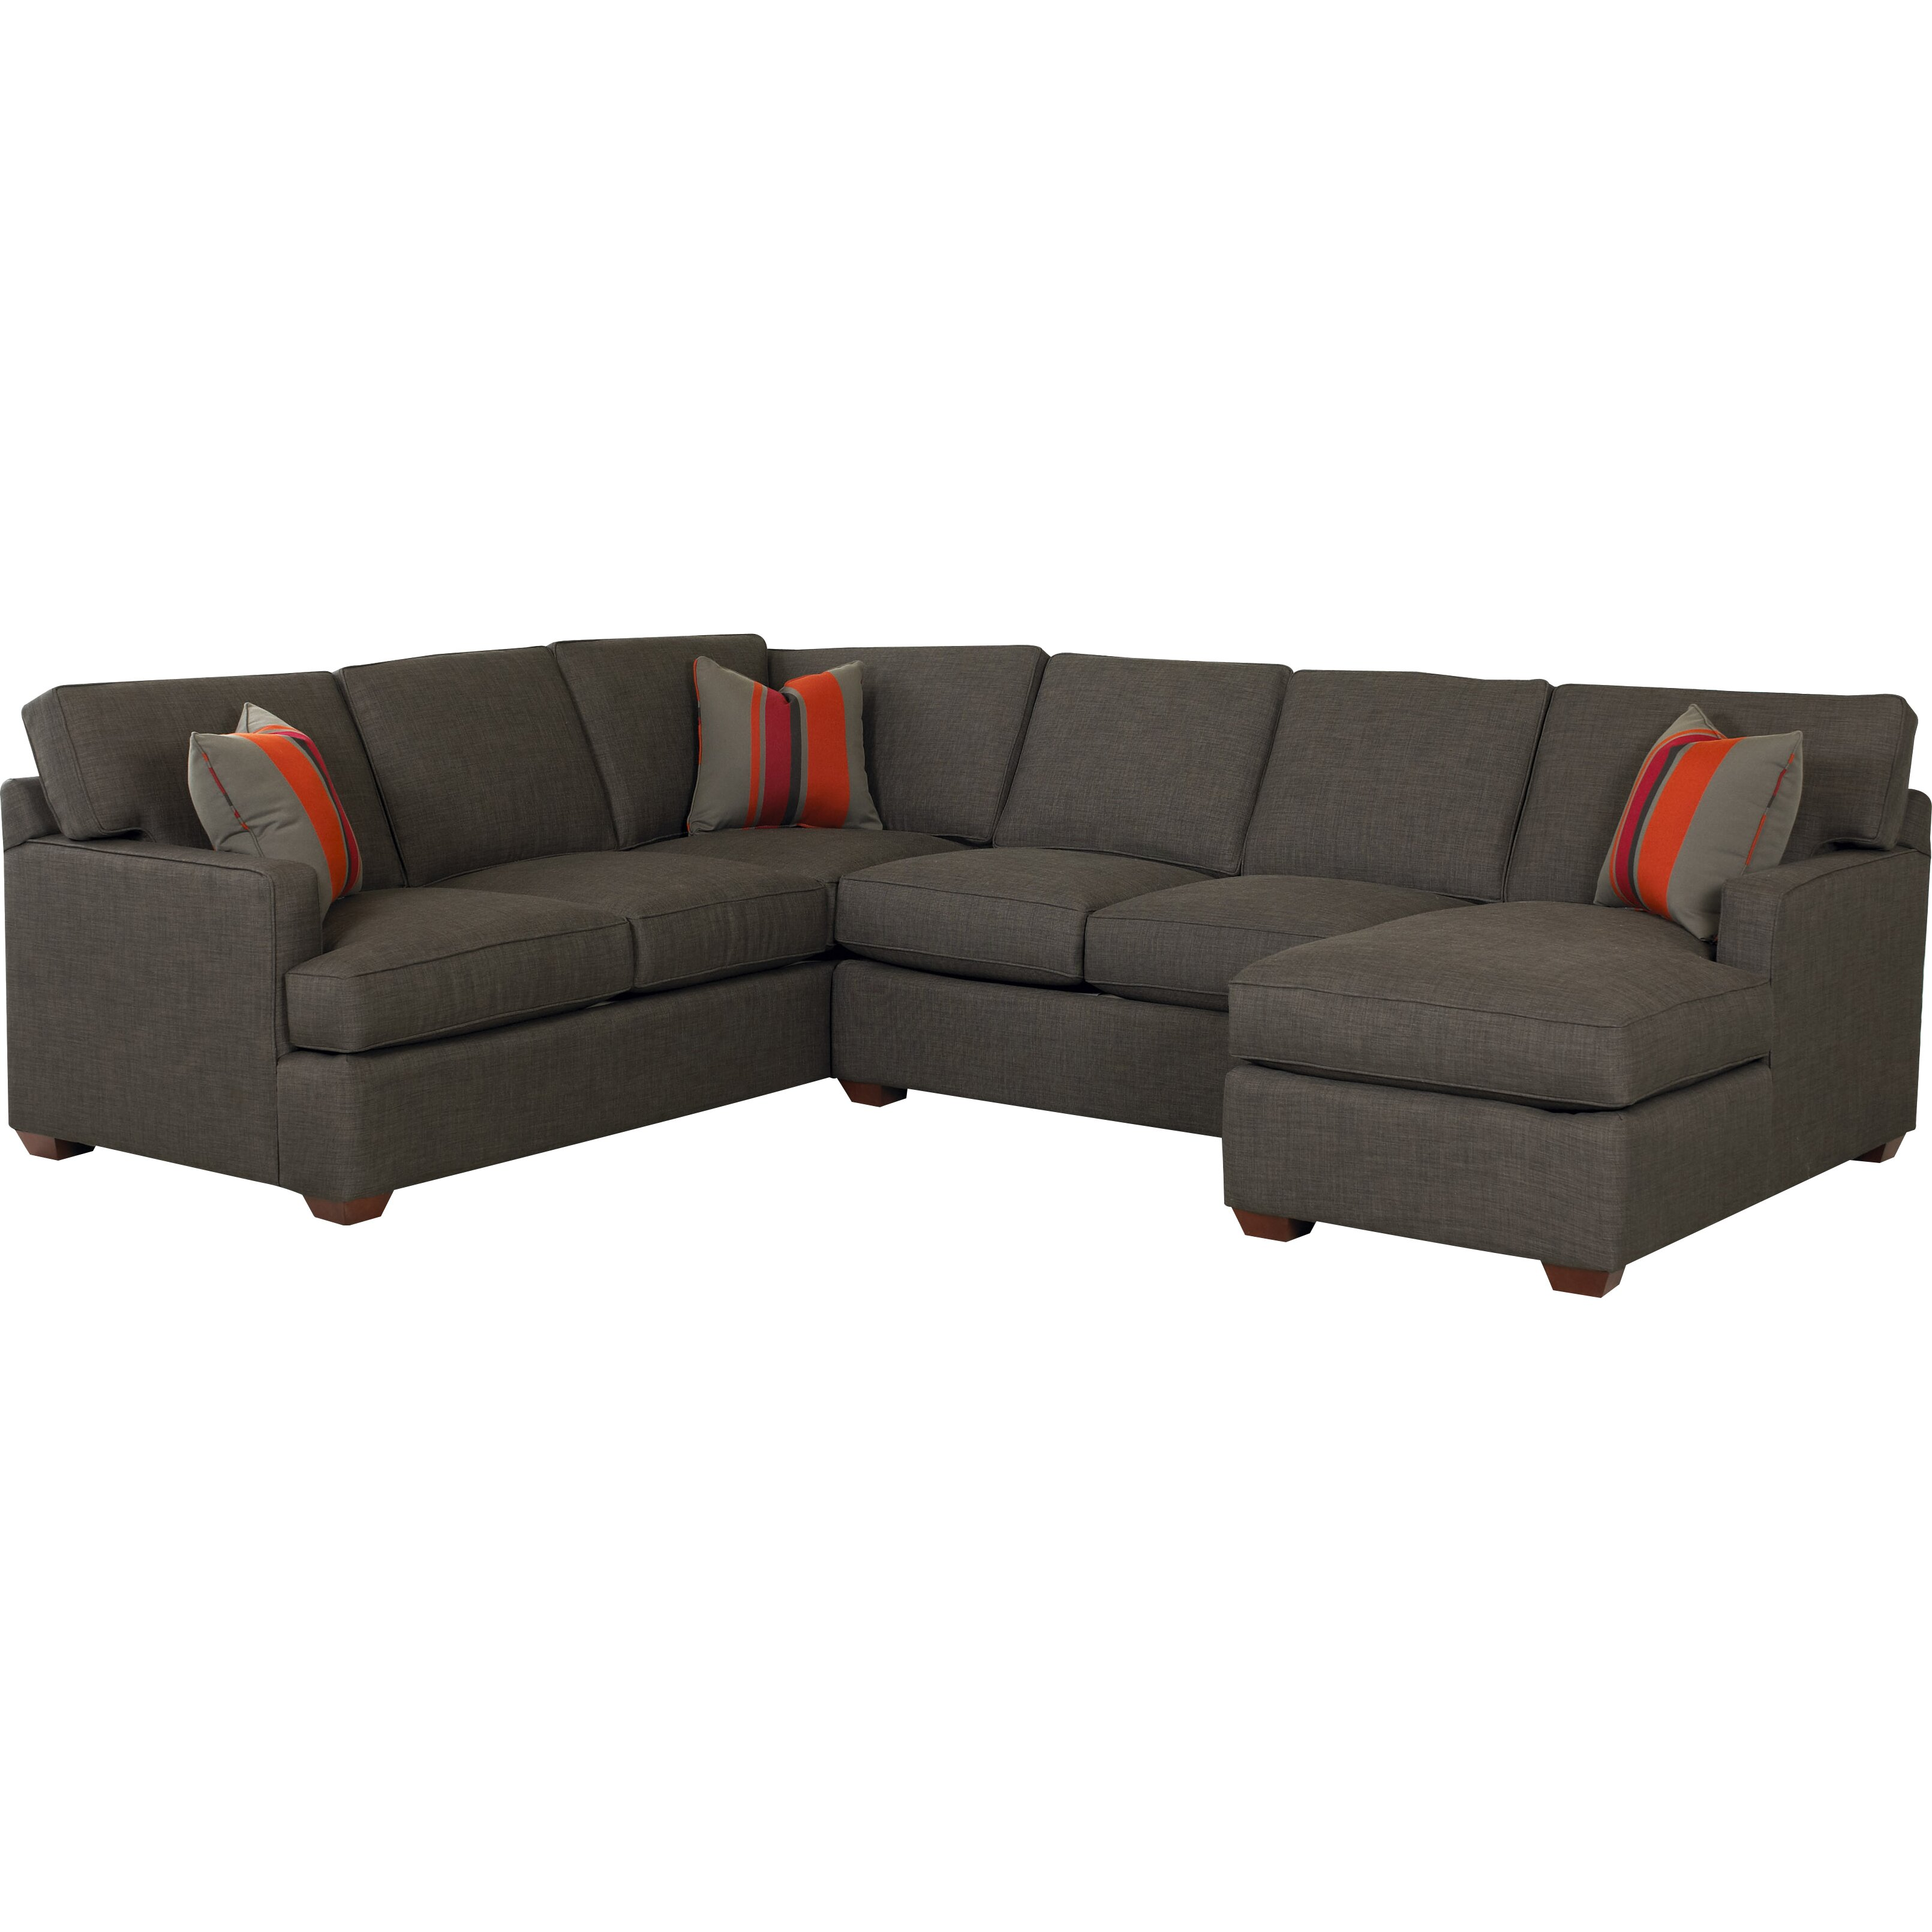 Klaussner Furniture Rory Sectional & Reviews | Wayfair